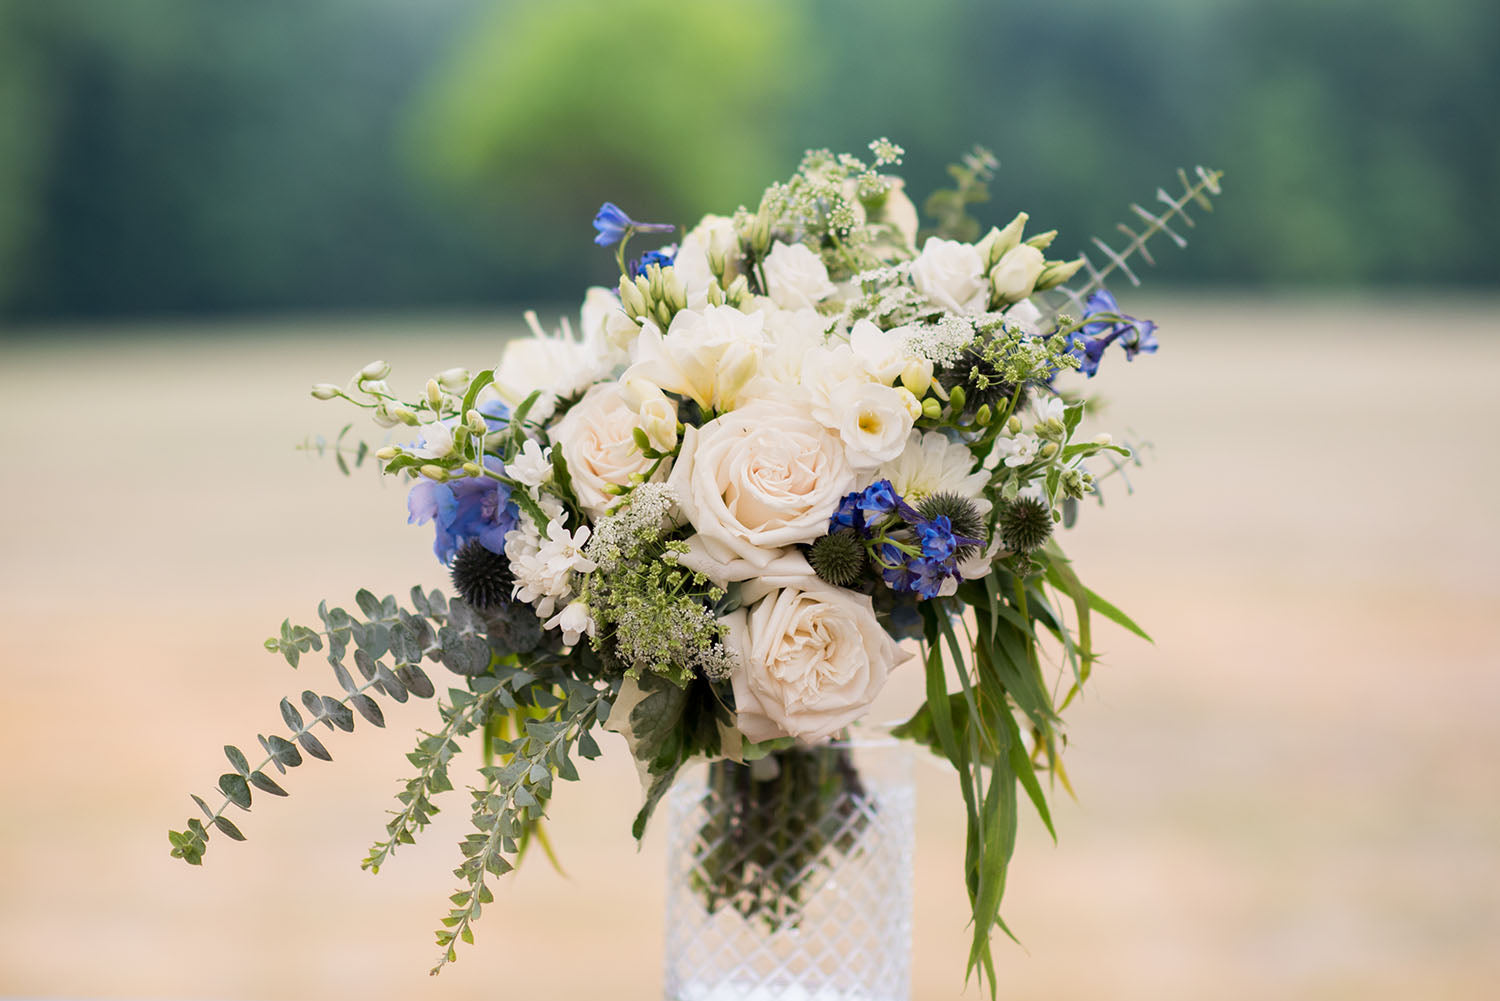 arrangement in greens, whites and blues